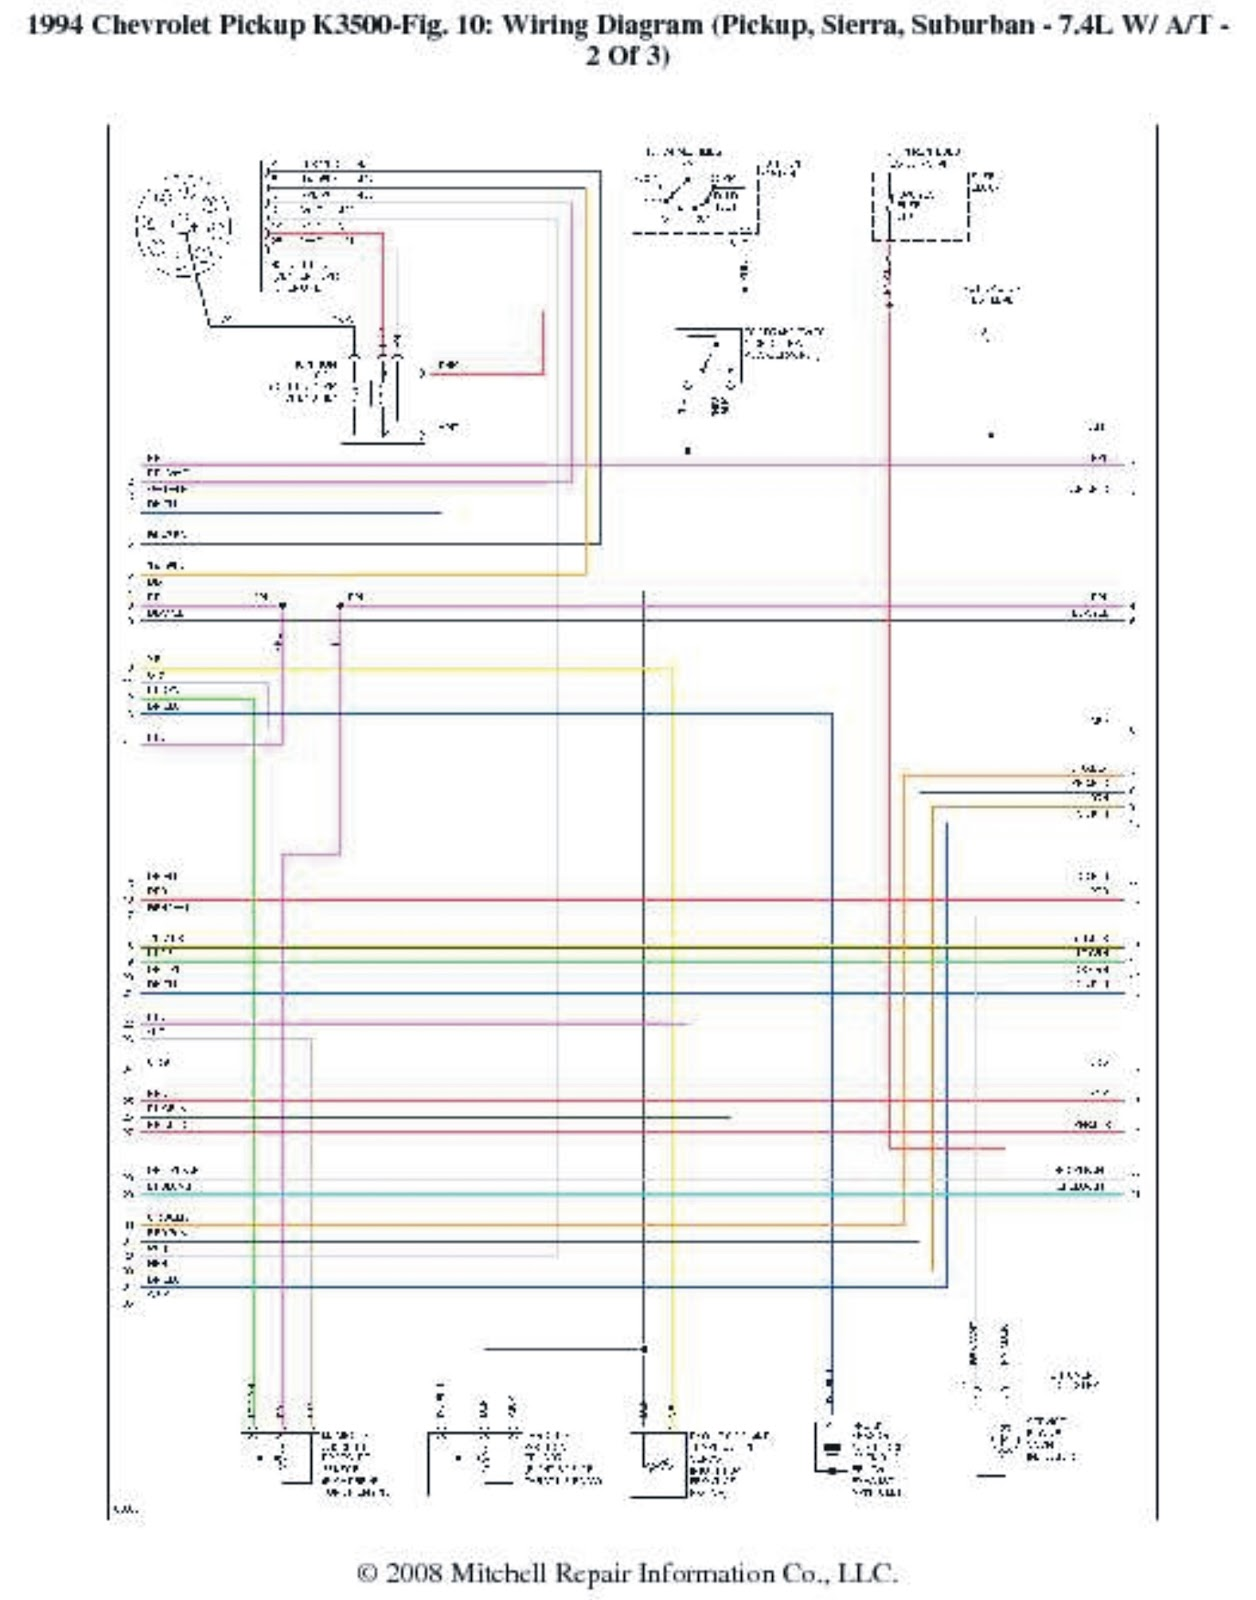 1994 Chevrolet PickUp K3500 Wiring Diagrams | Wiring